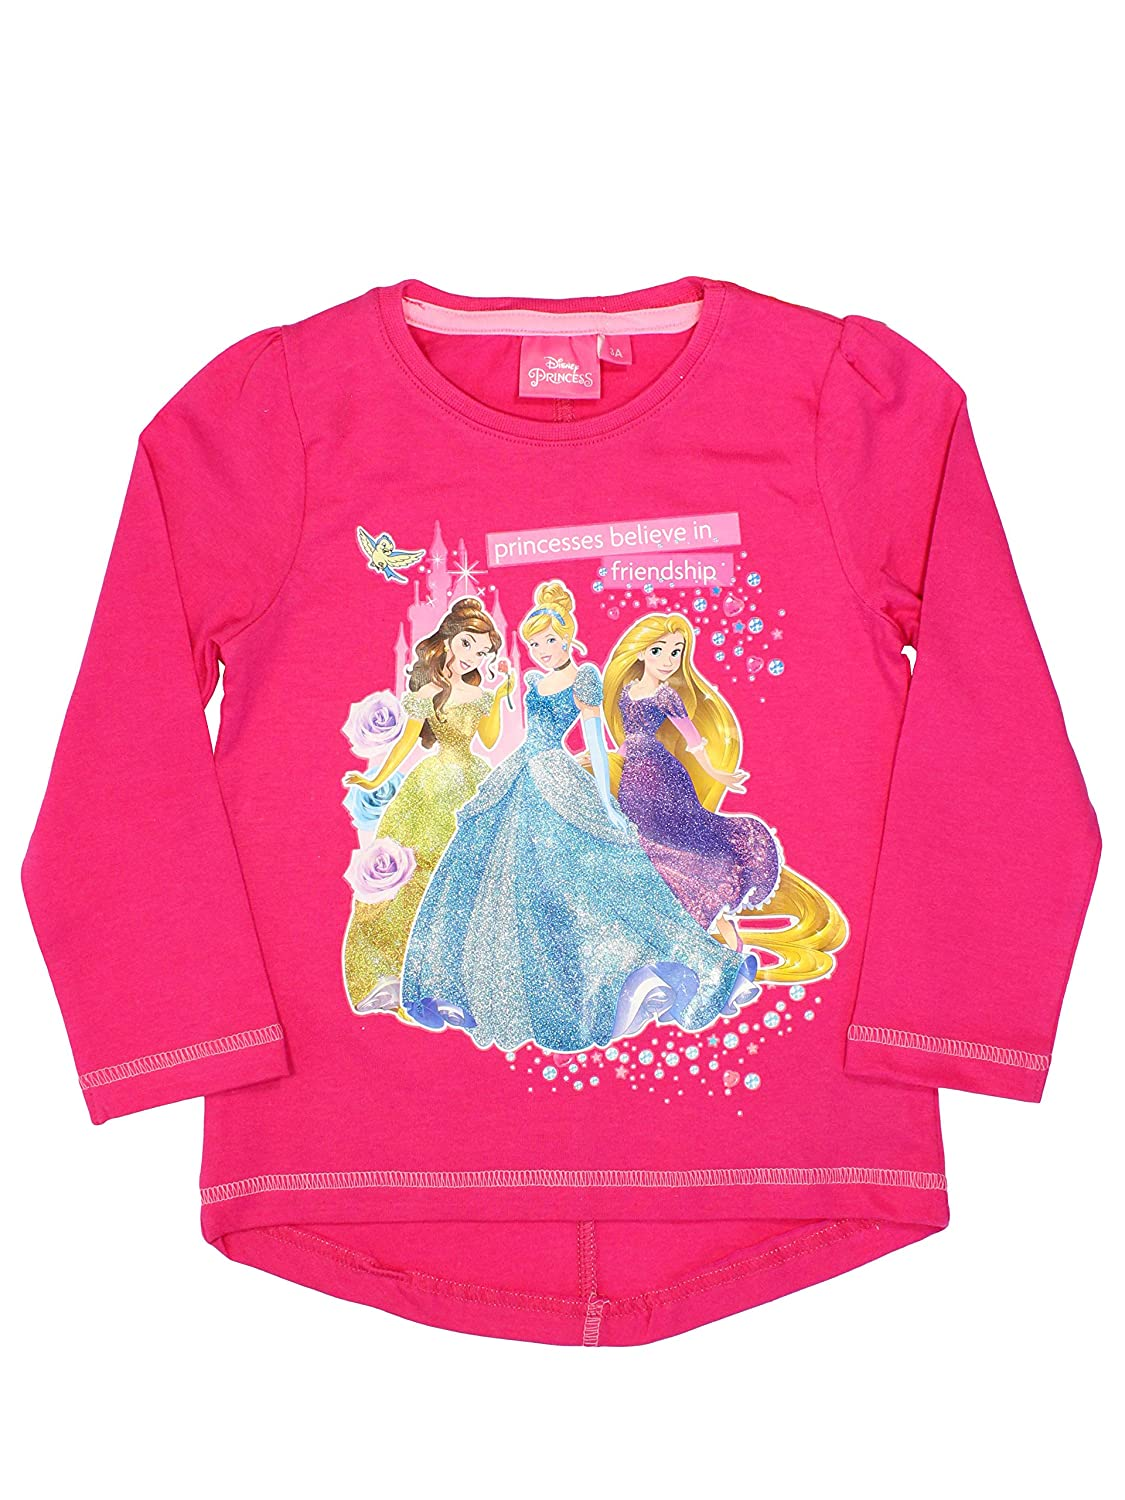 NEW Girls Official Disney Princesses Pink 2 Piece Long Pyjama Set Ages 3-8 years